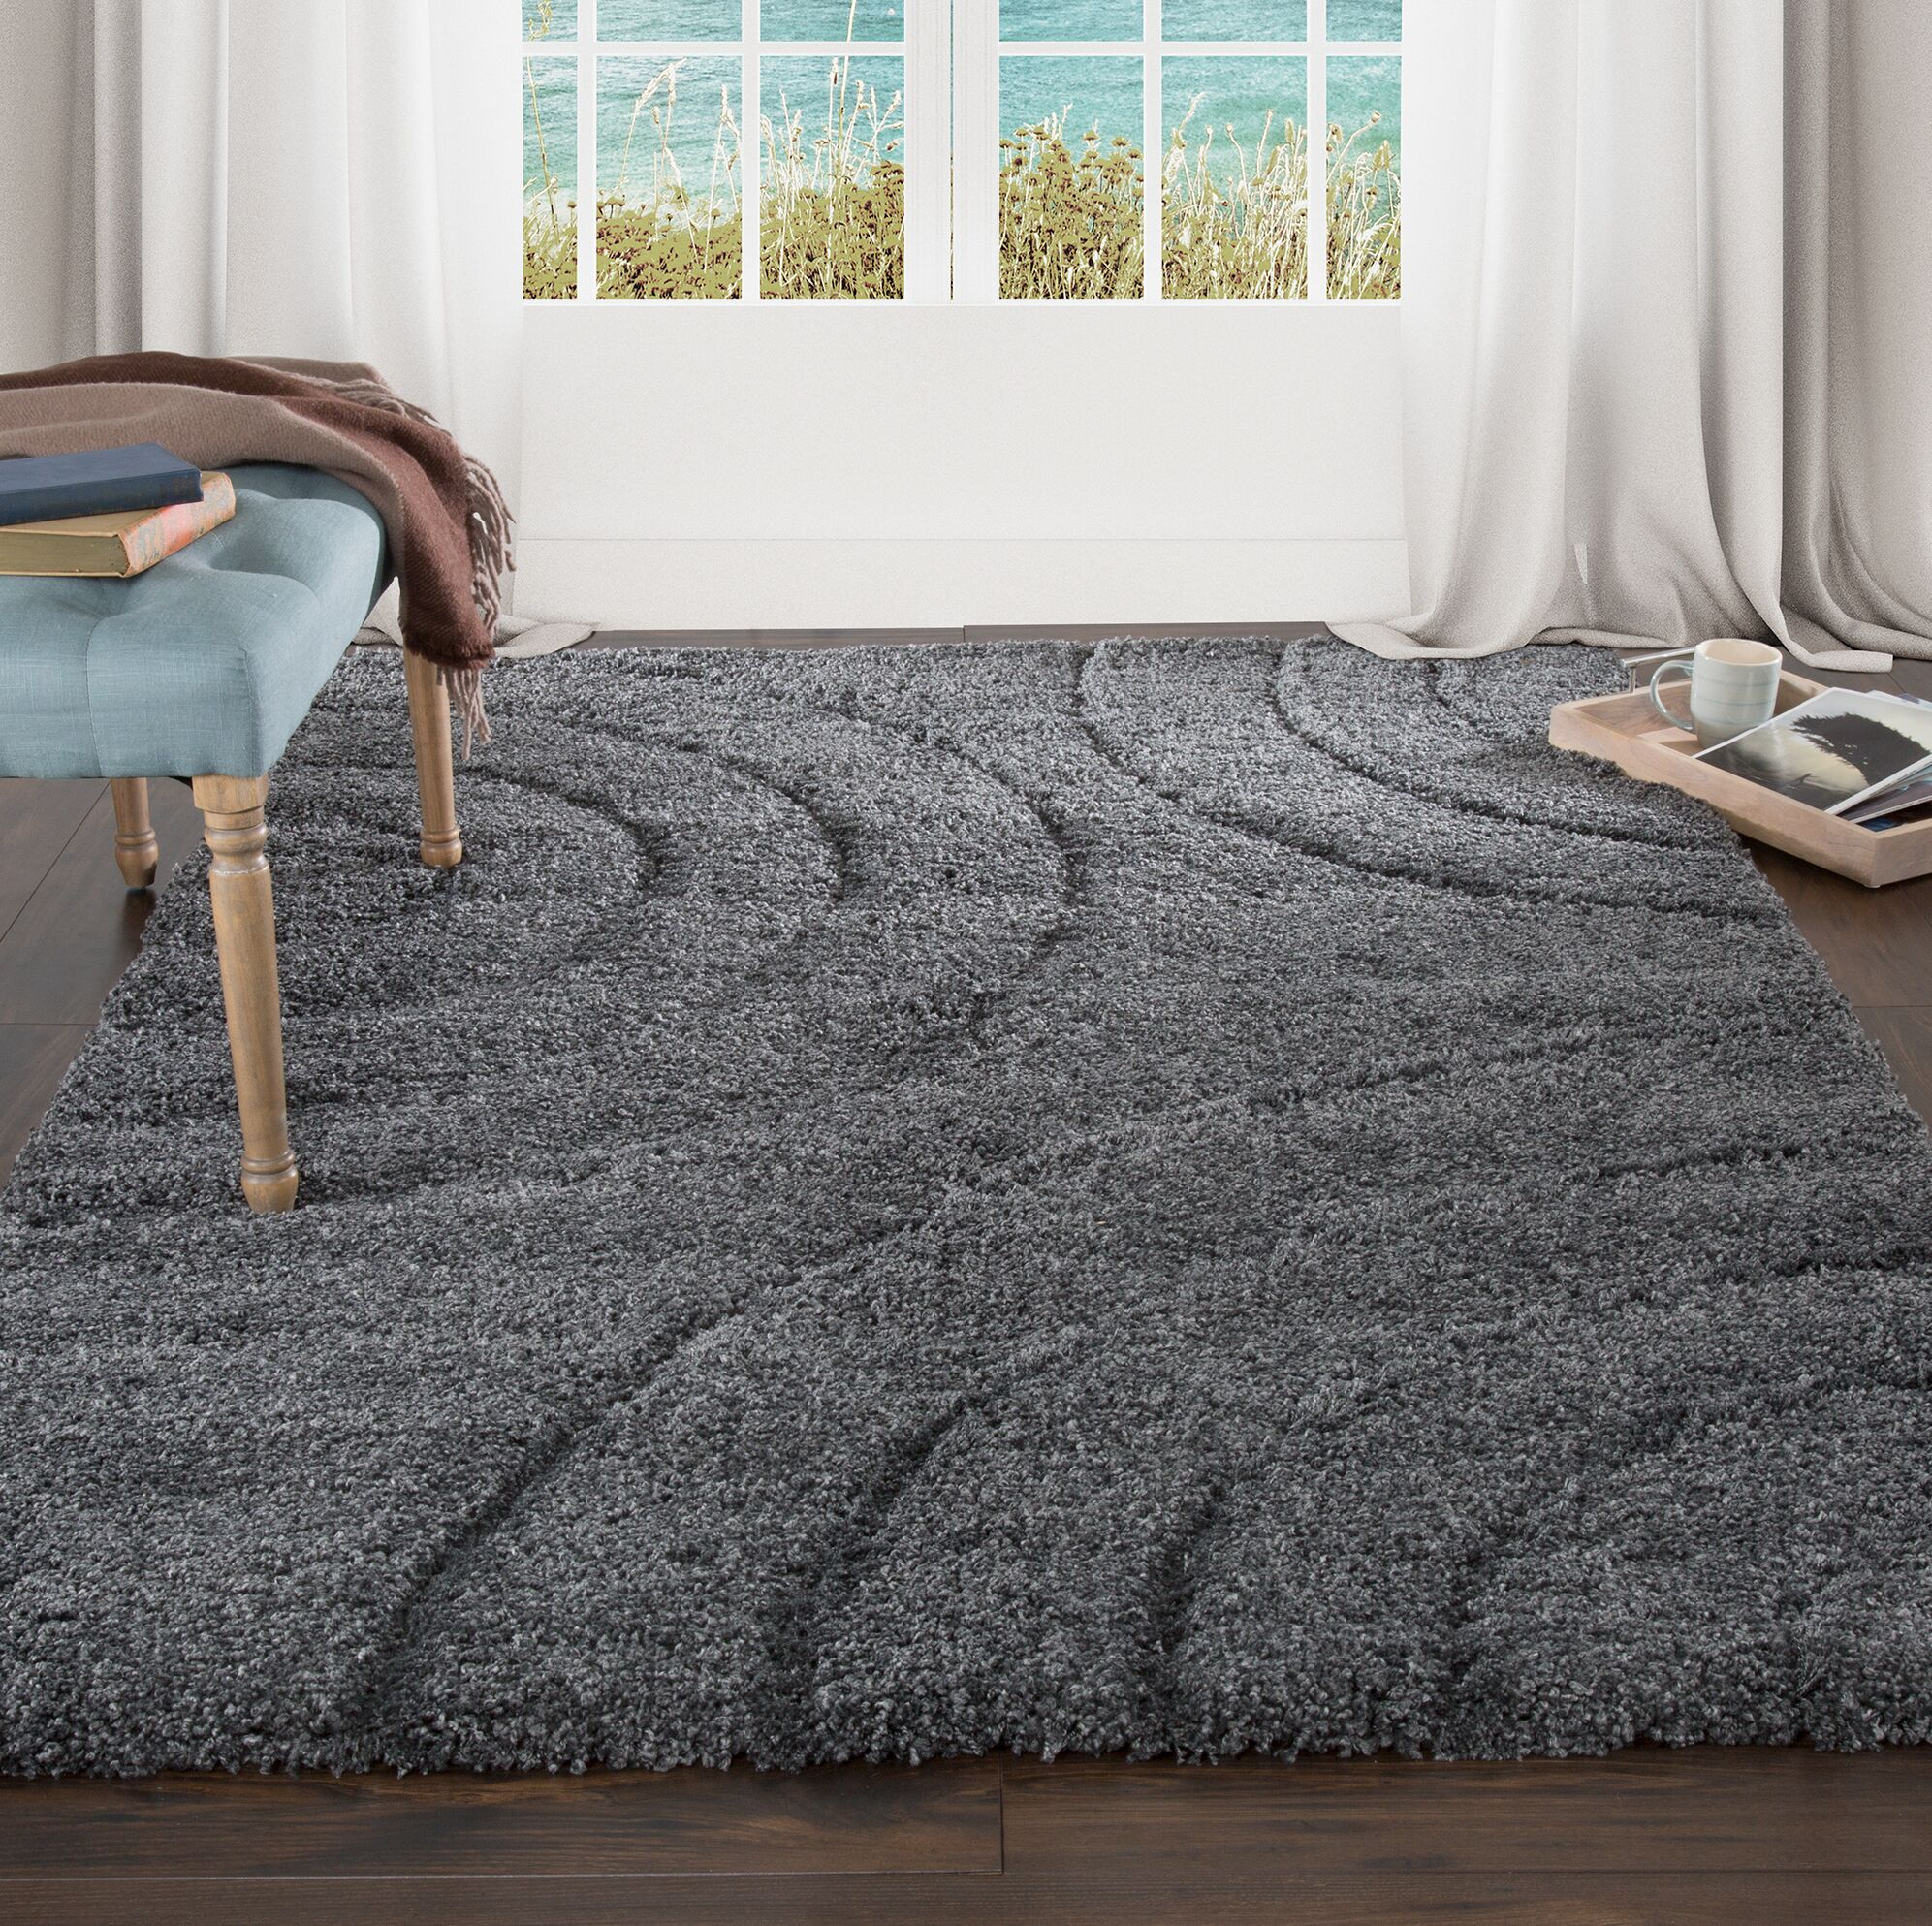 Sculptured Gray Area Rug Rug Size: 8' x 10'